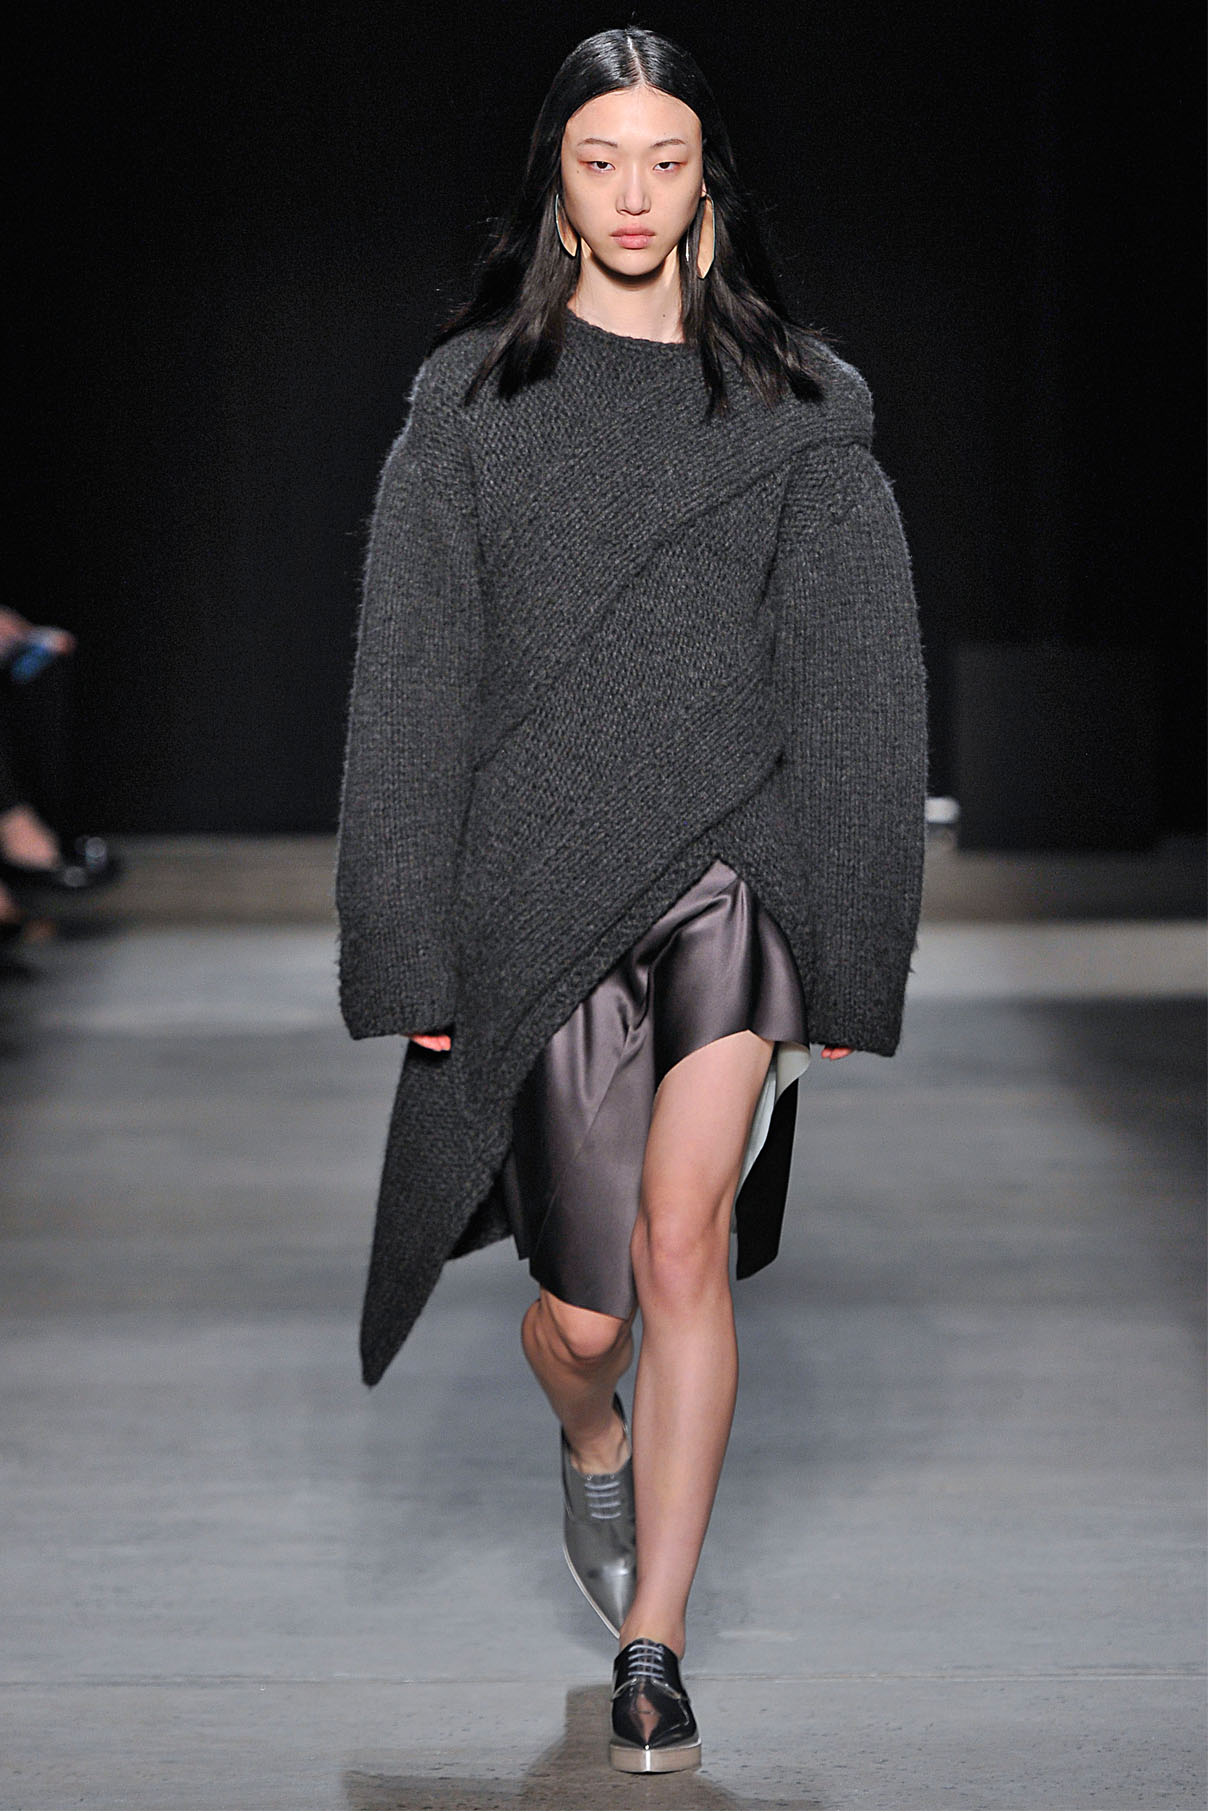 Look 21 Granite cashmere handknit sweater with black silk top and gunmetal/aquamarine bonded silk skirt.